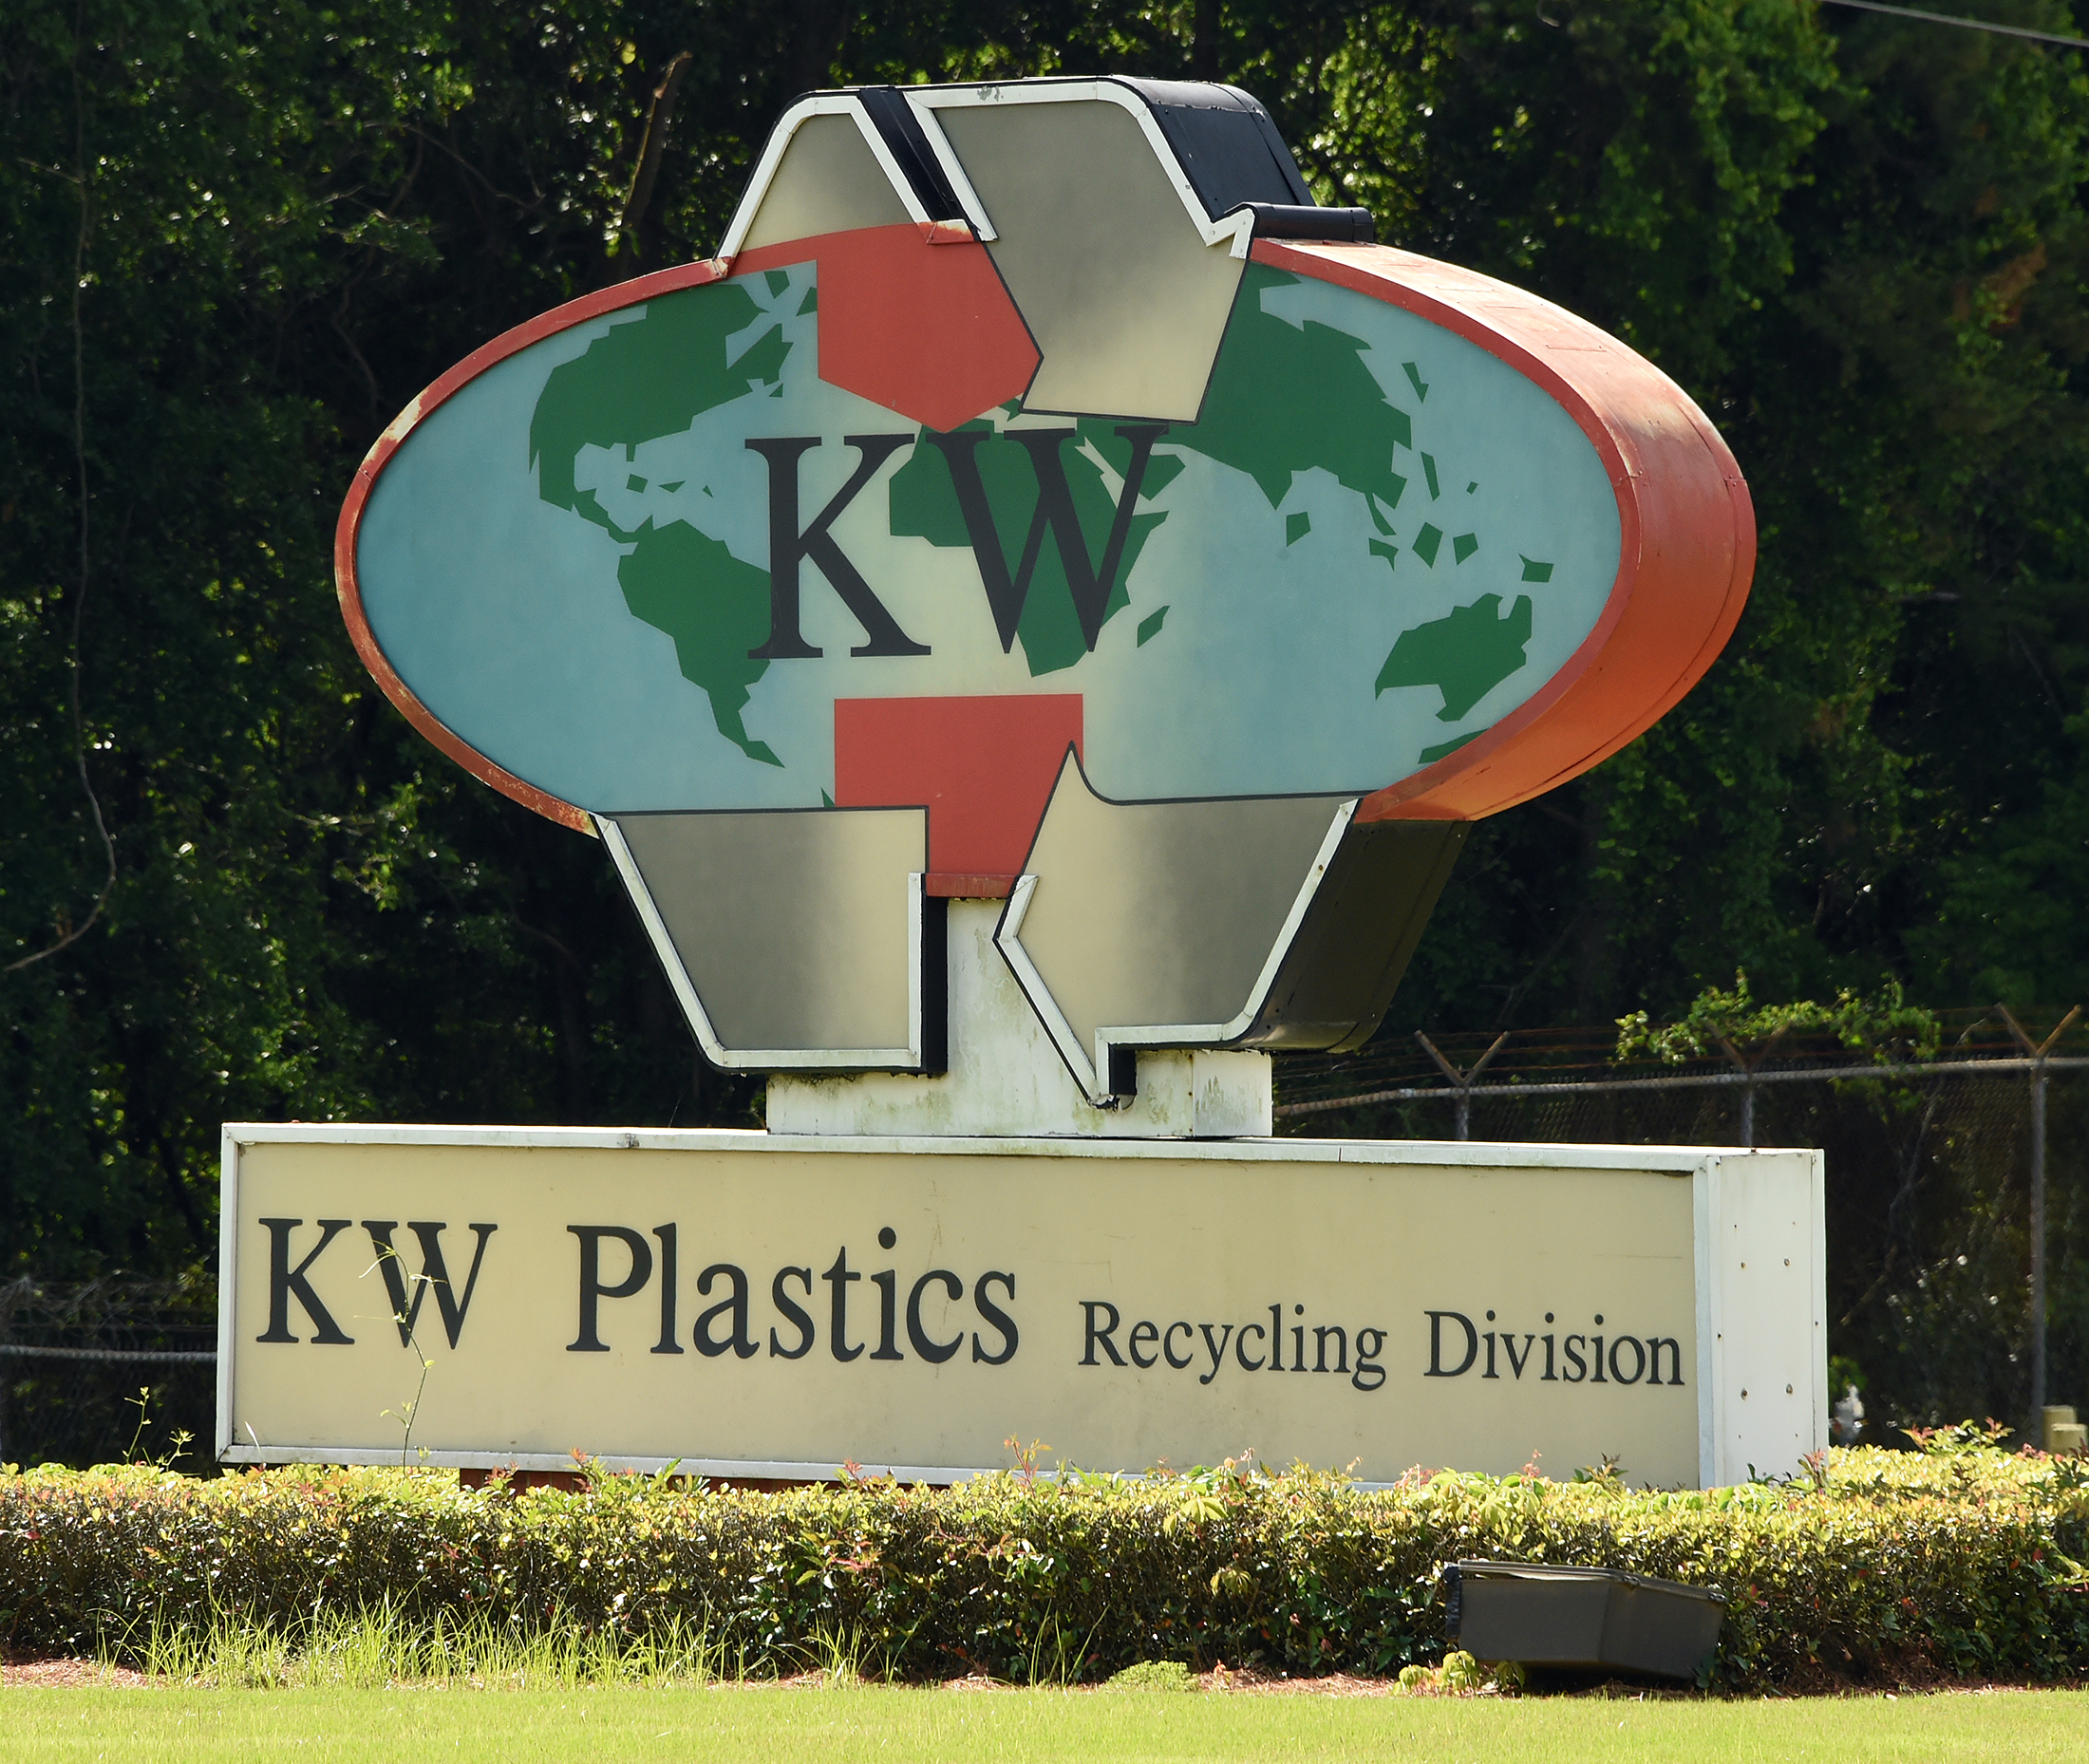 Alabama is great at recycling other people's trash - just